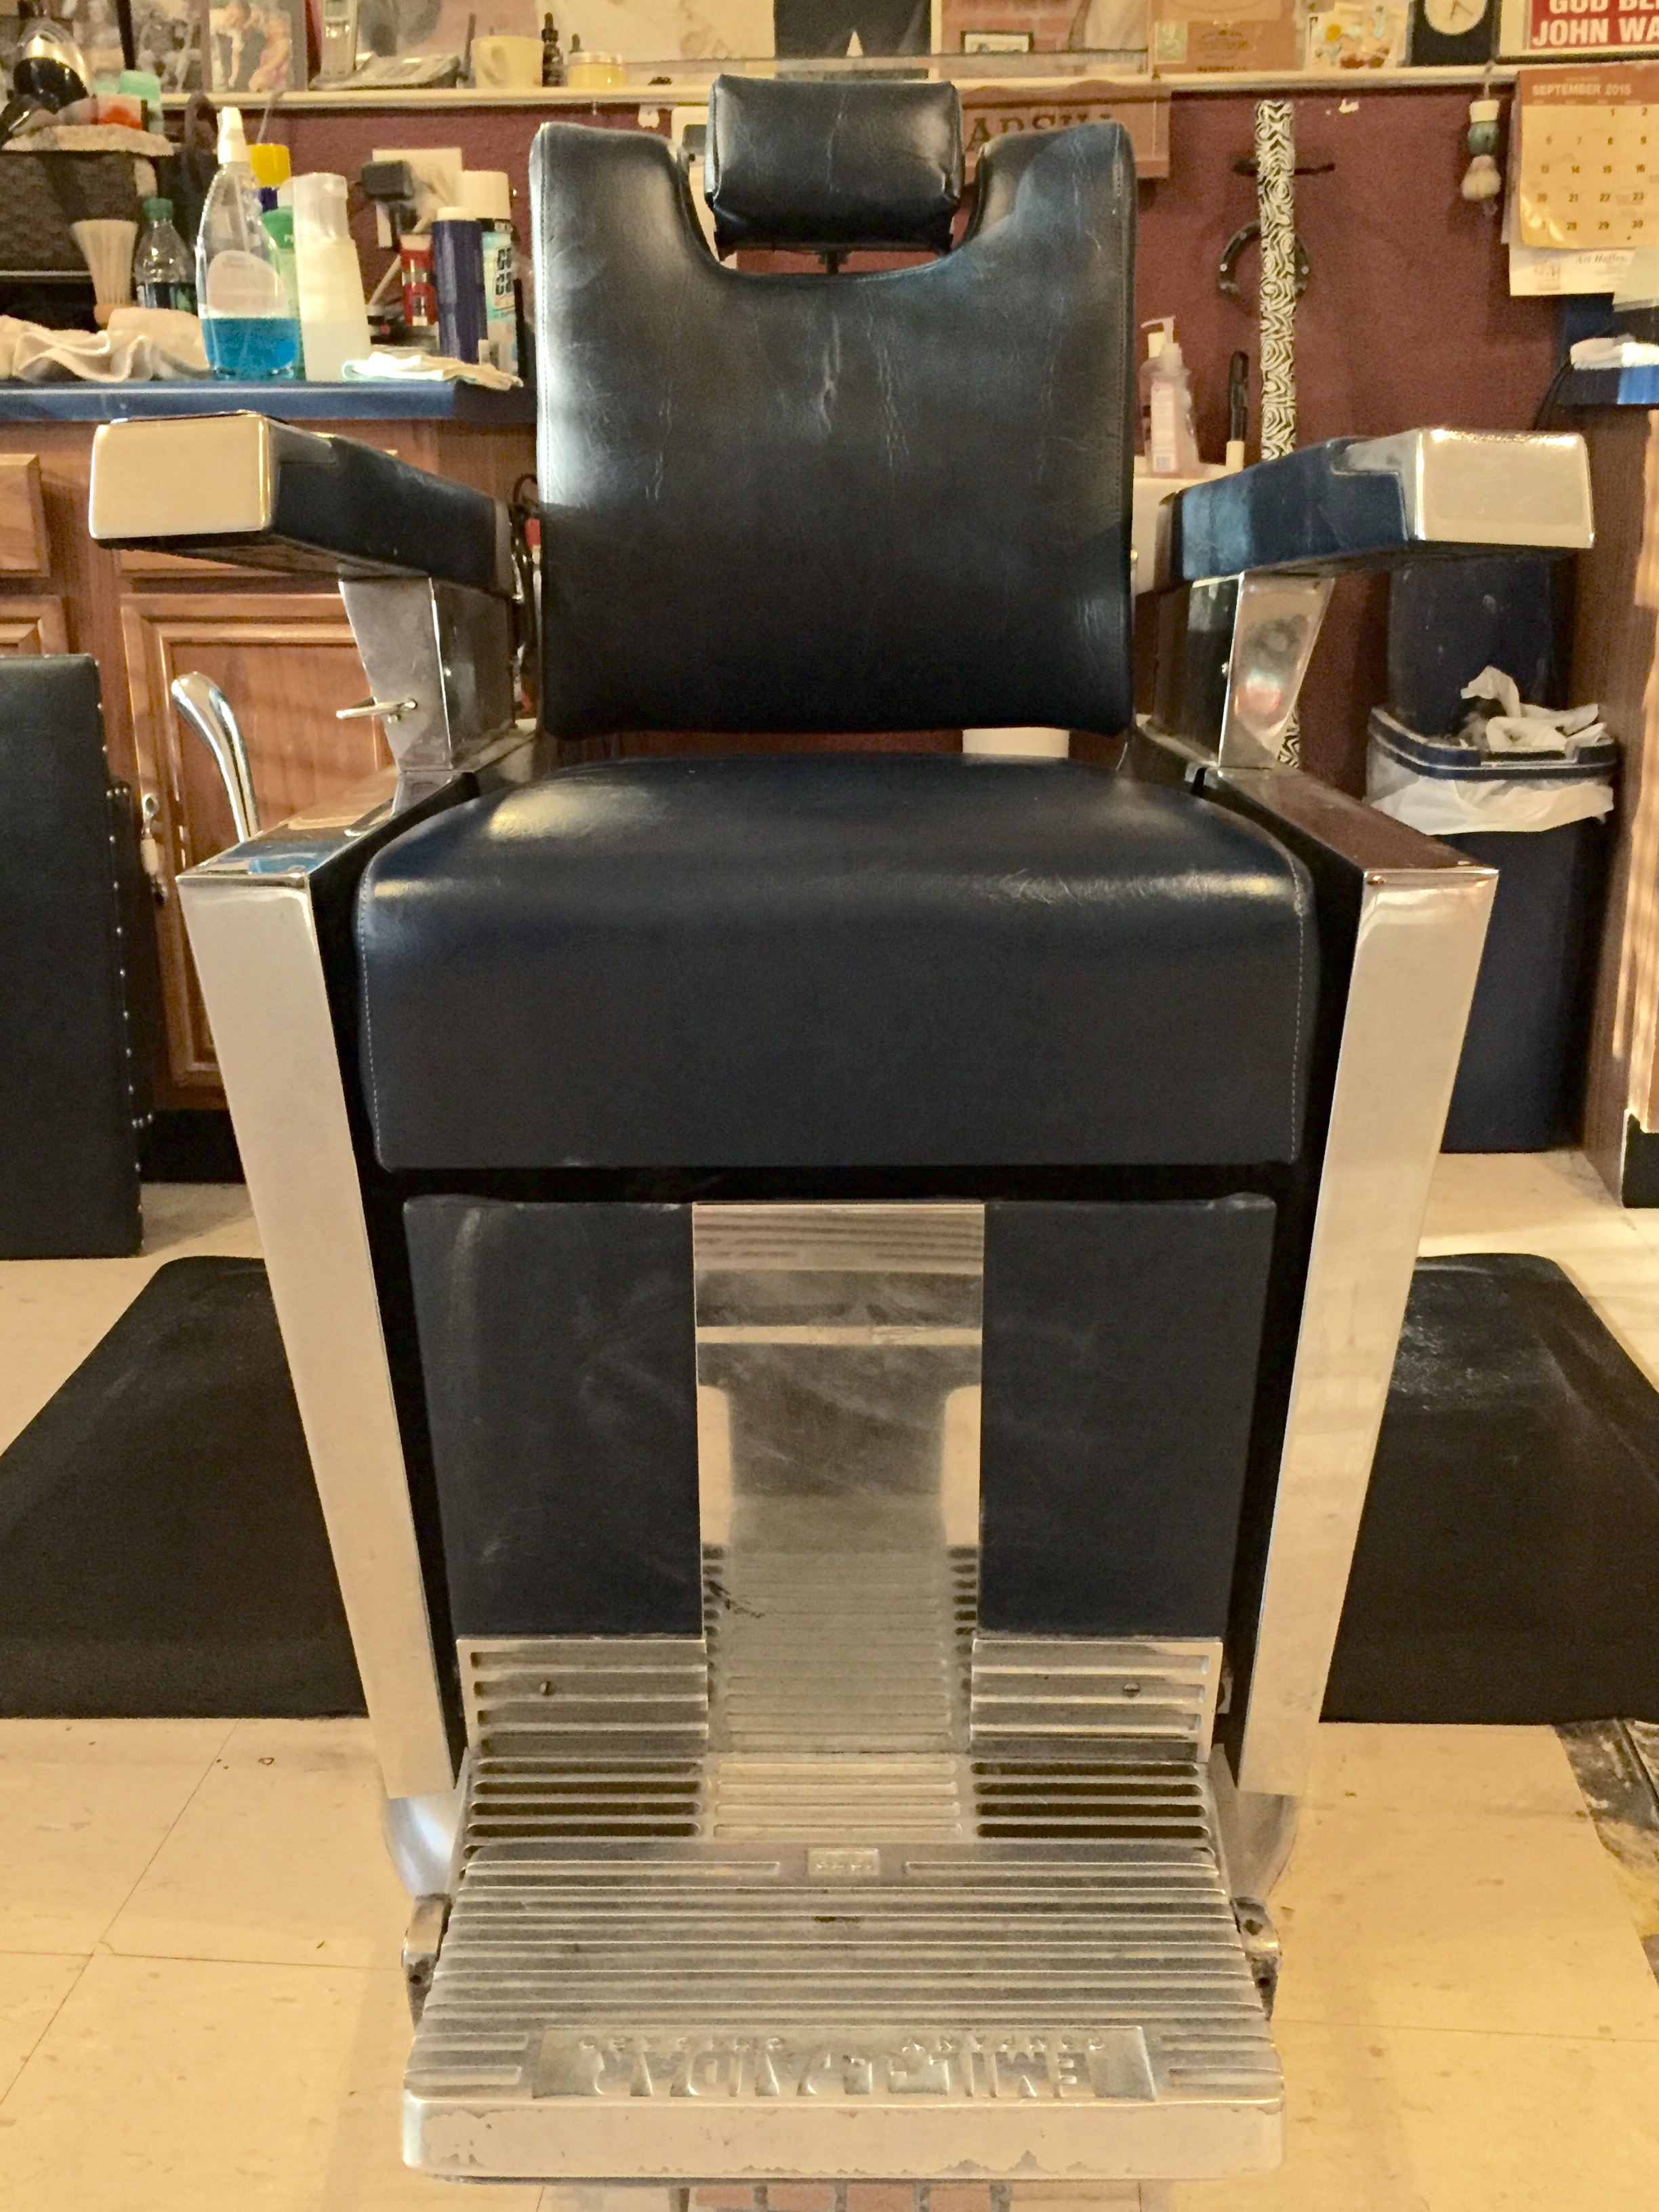 Vintage Barber Chair 2 Twin Sister Emil J Paidar 1959 Antique Barber Chairs